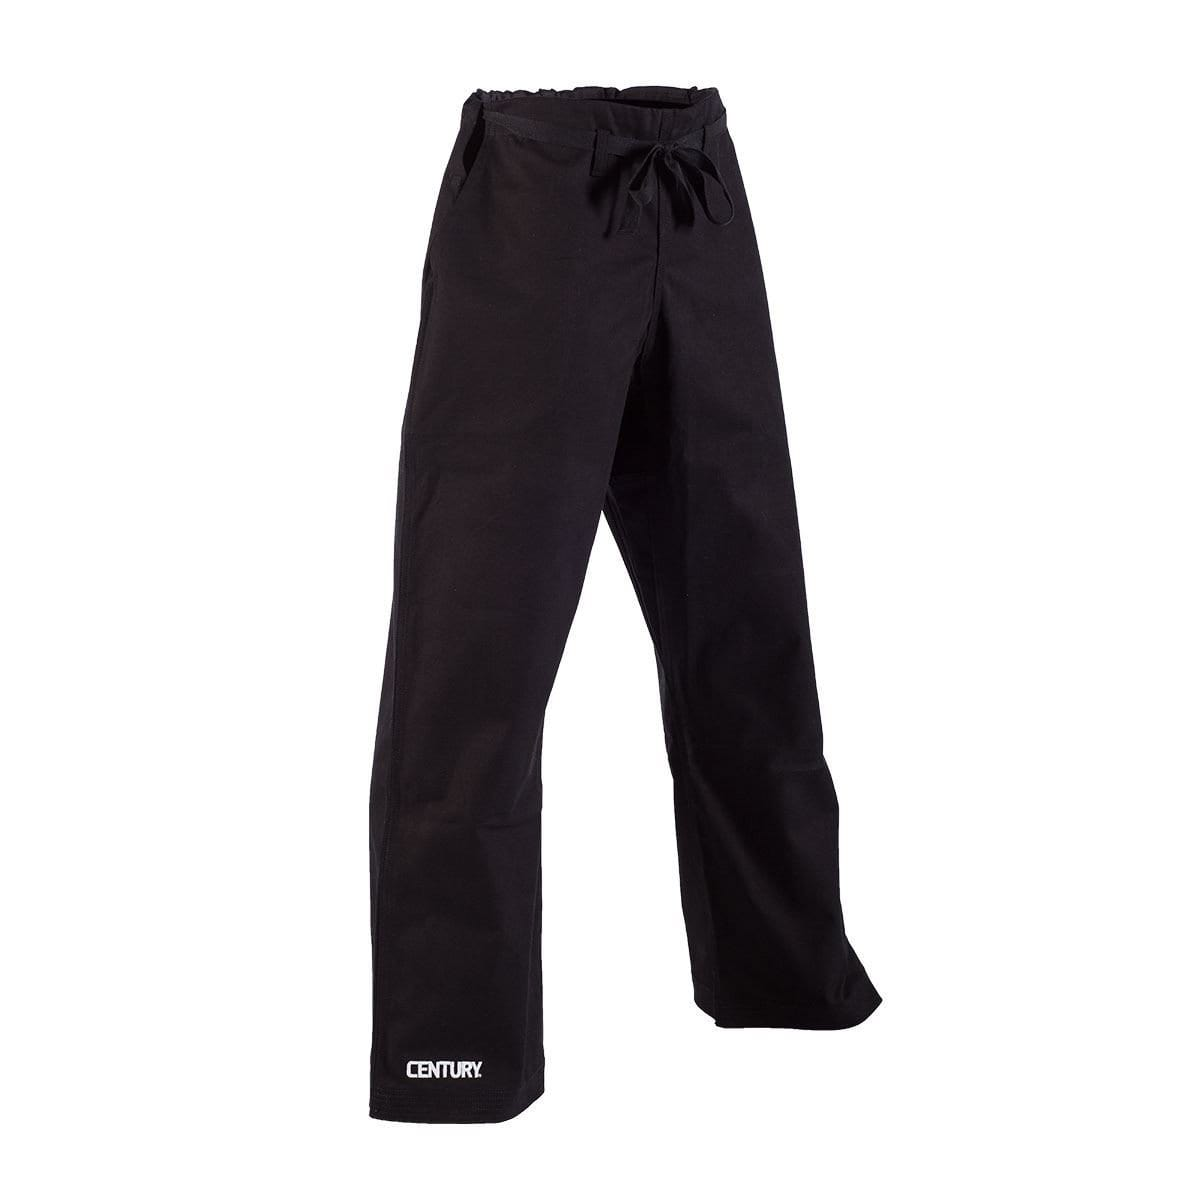 Century 10 oz. Middleweight Brushed Cotton Pants with Pockets - Traditional Waist-black